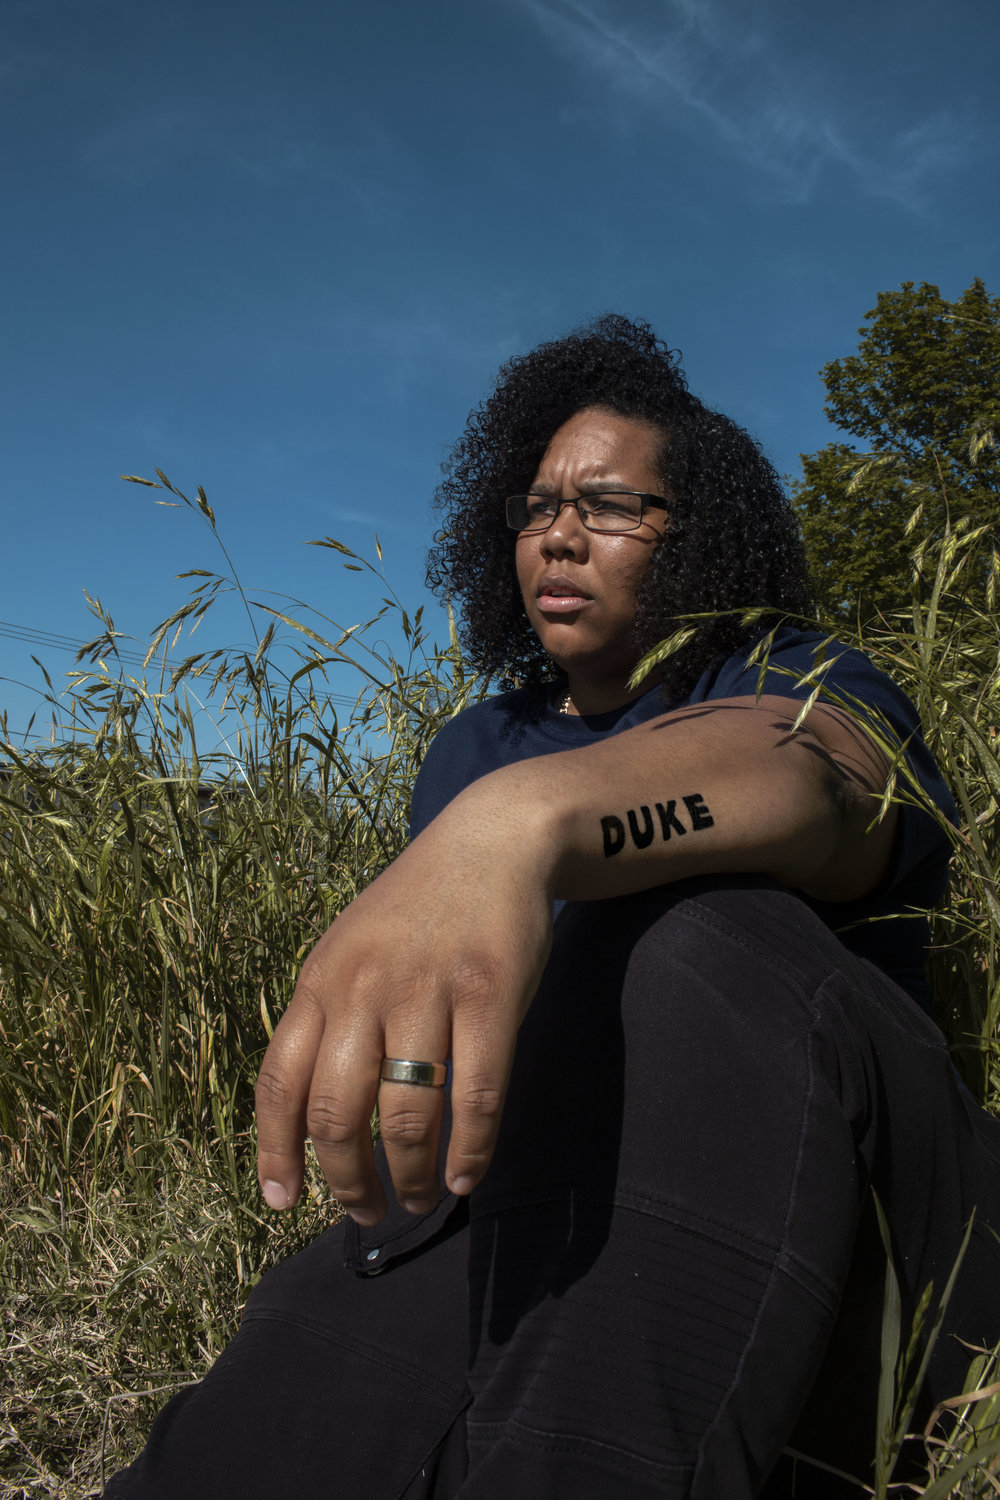 Mama Duke is a female rapper who is setting the Austin music scene on fire with her captivating energy, sick bars and melodies.